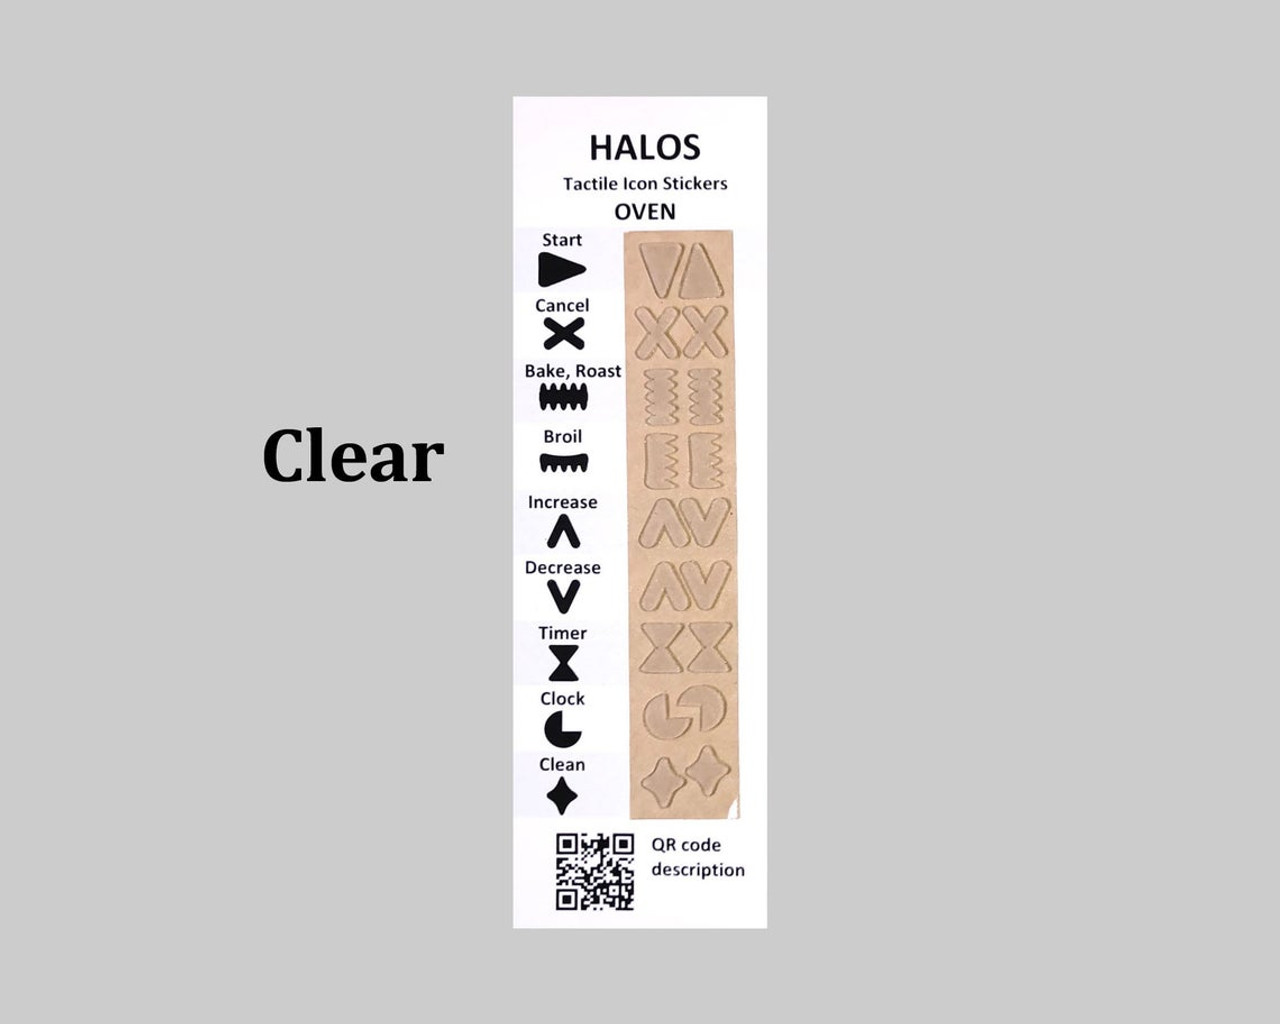 HALOS Tactile Oven Stickers - Clear - 2 sets per pack